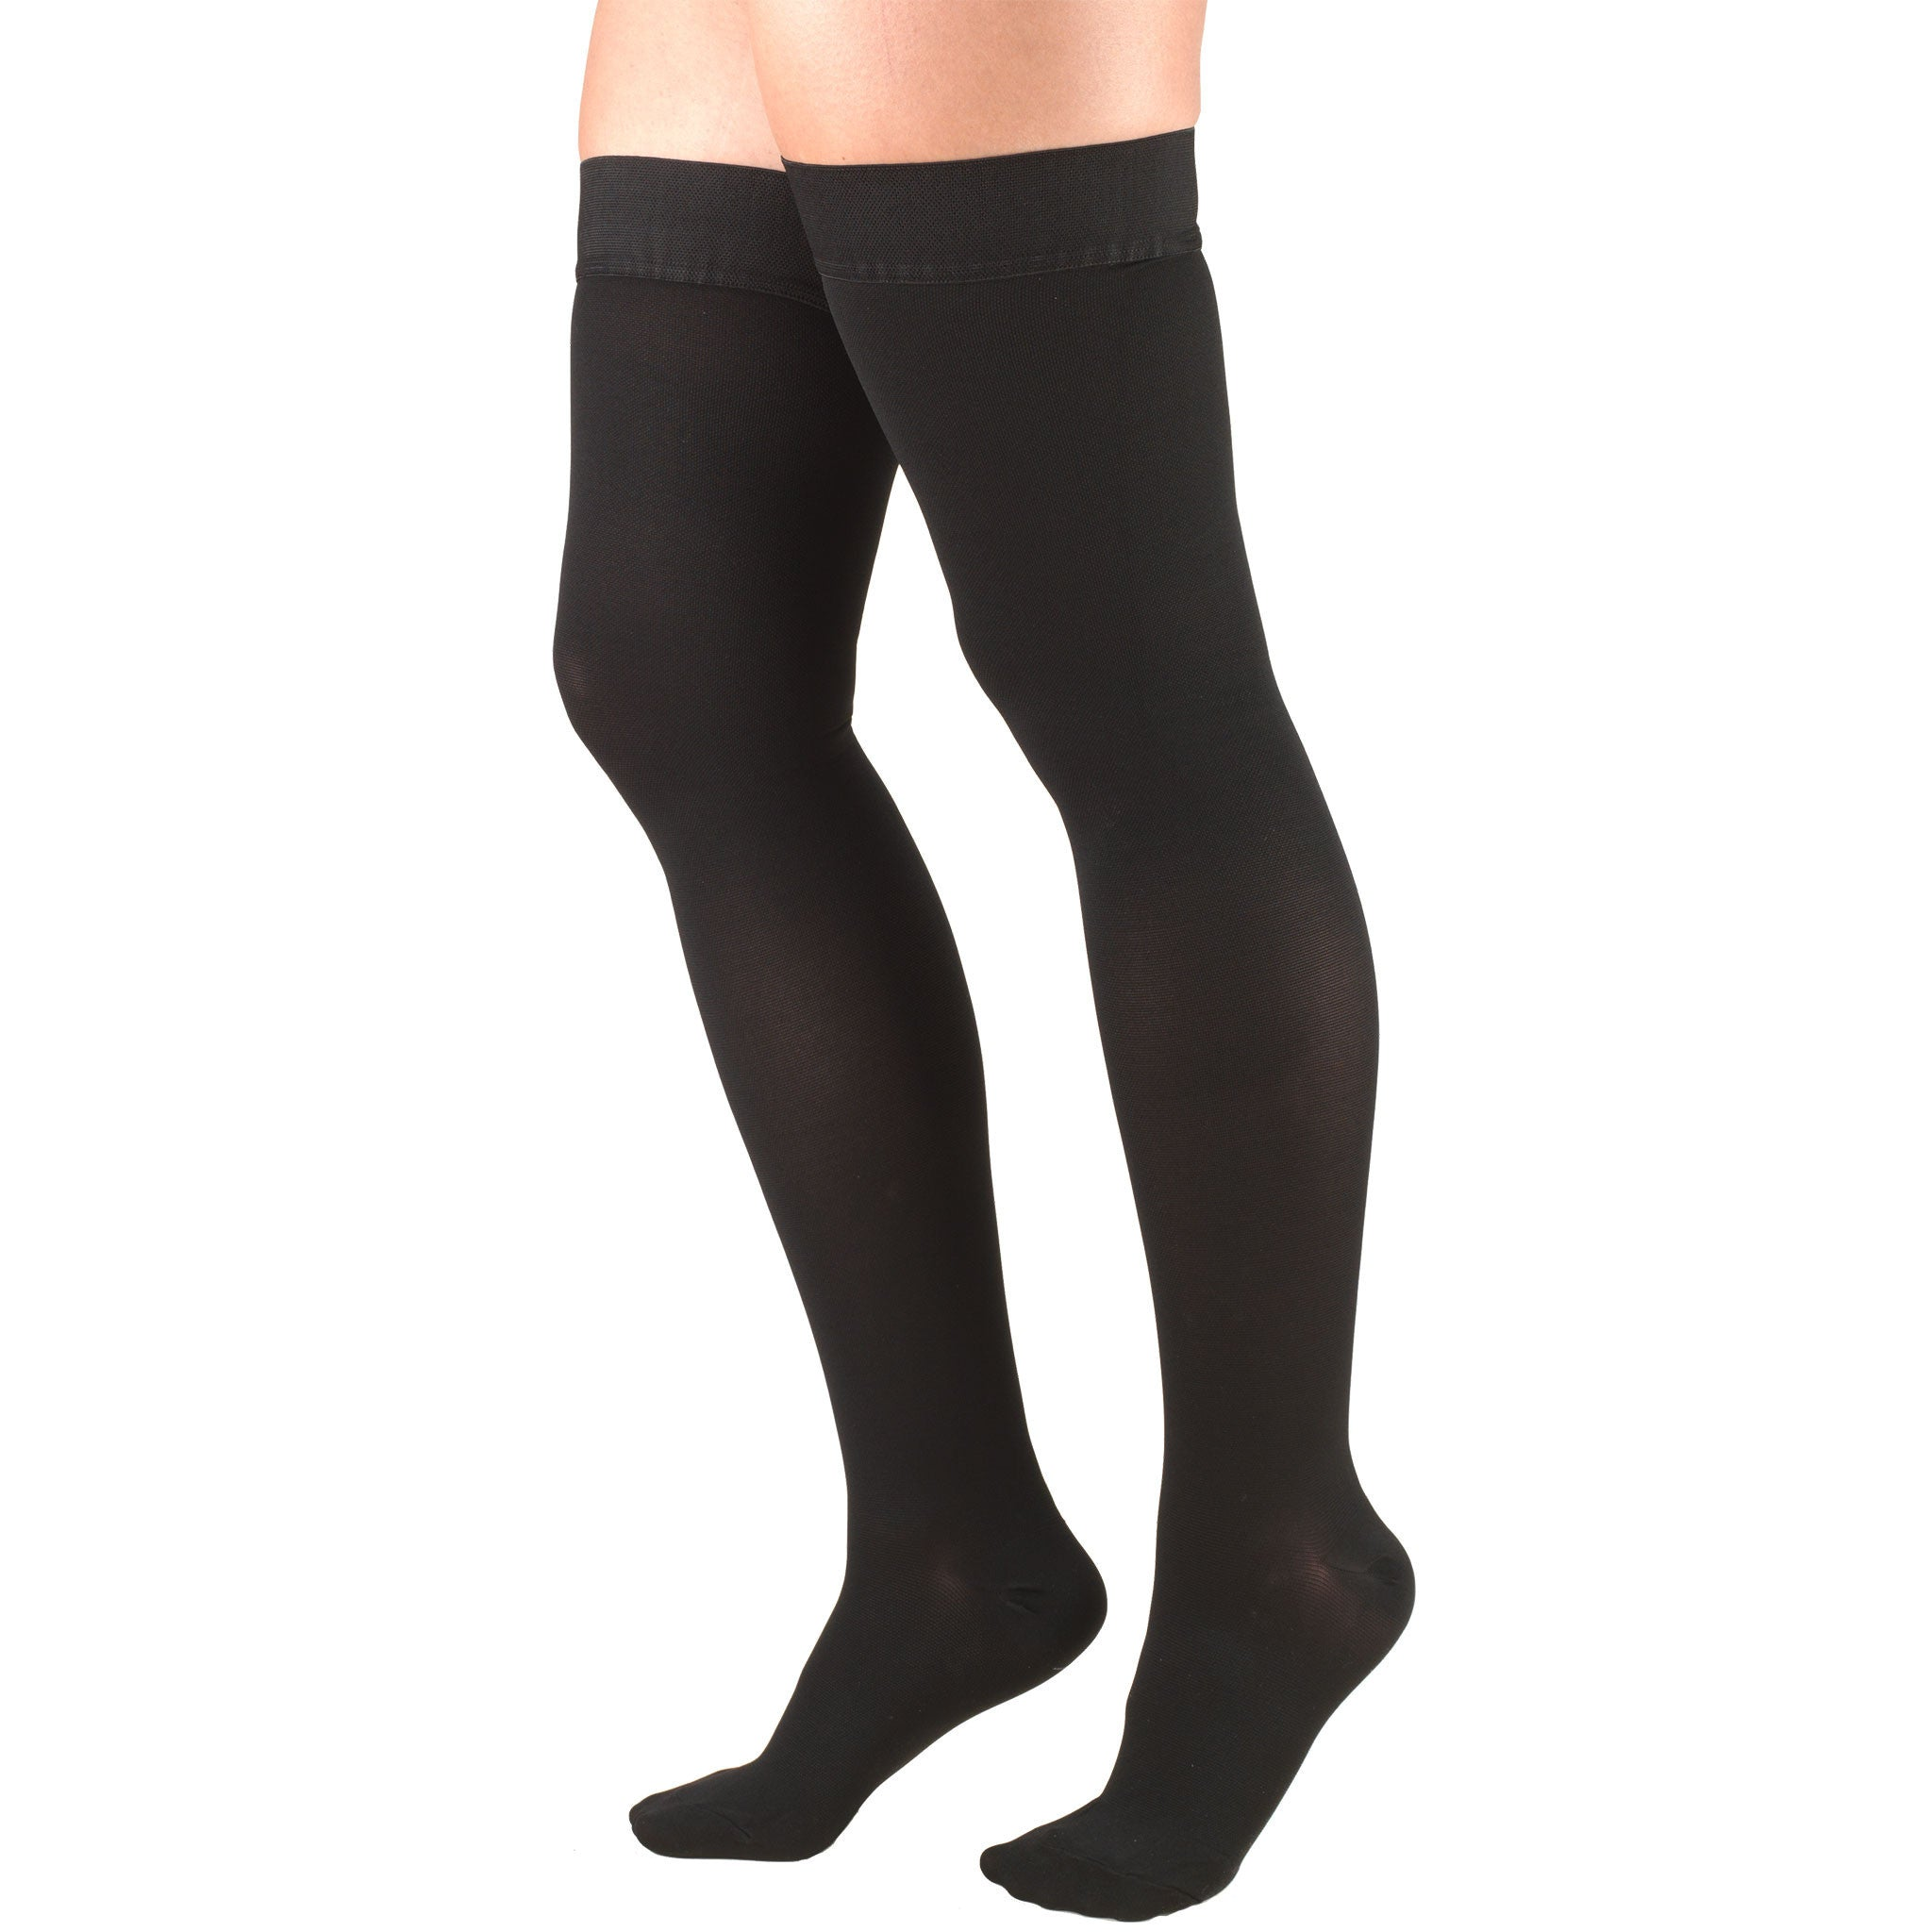 5bb05718f99 Truform 8848 Compression Stockings 30-40 mmHg Black – CompressionStocking.co